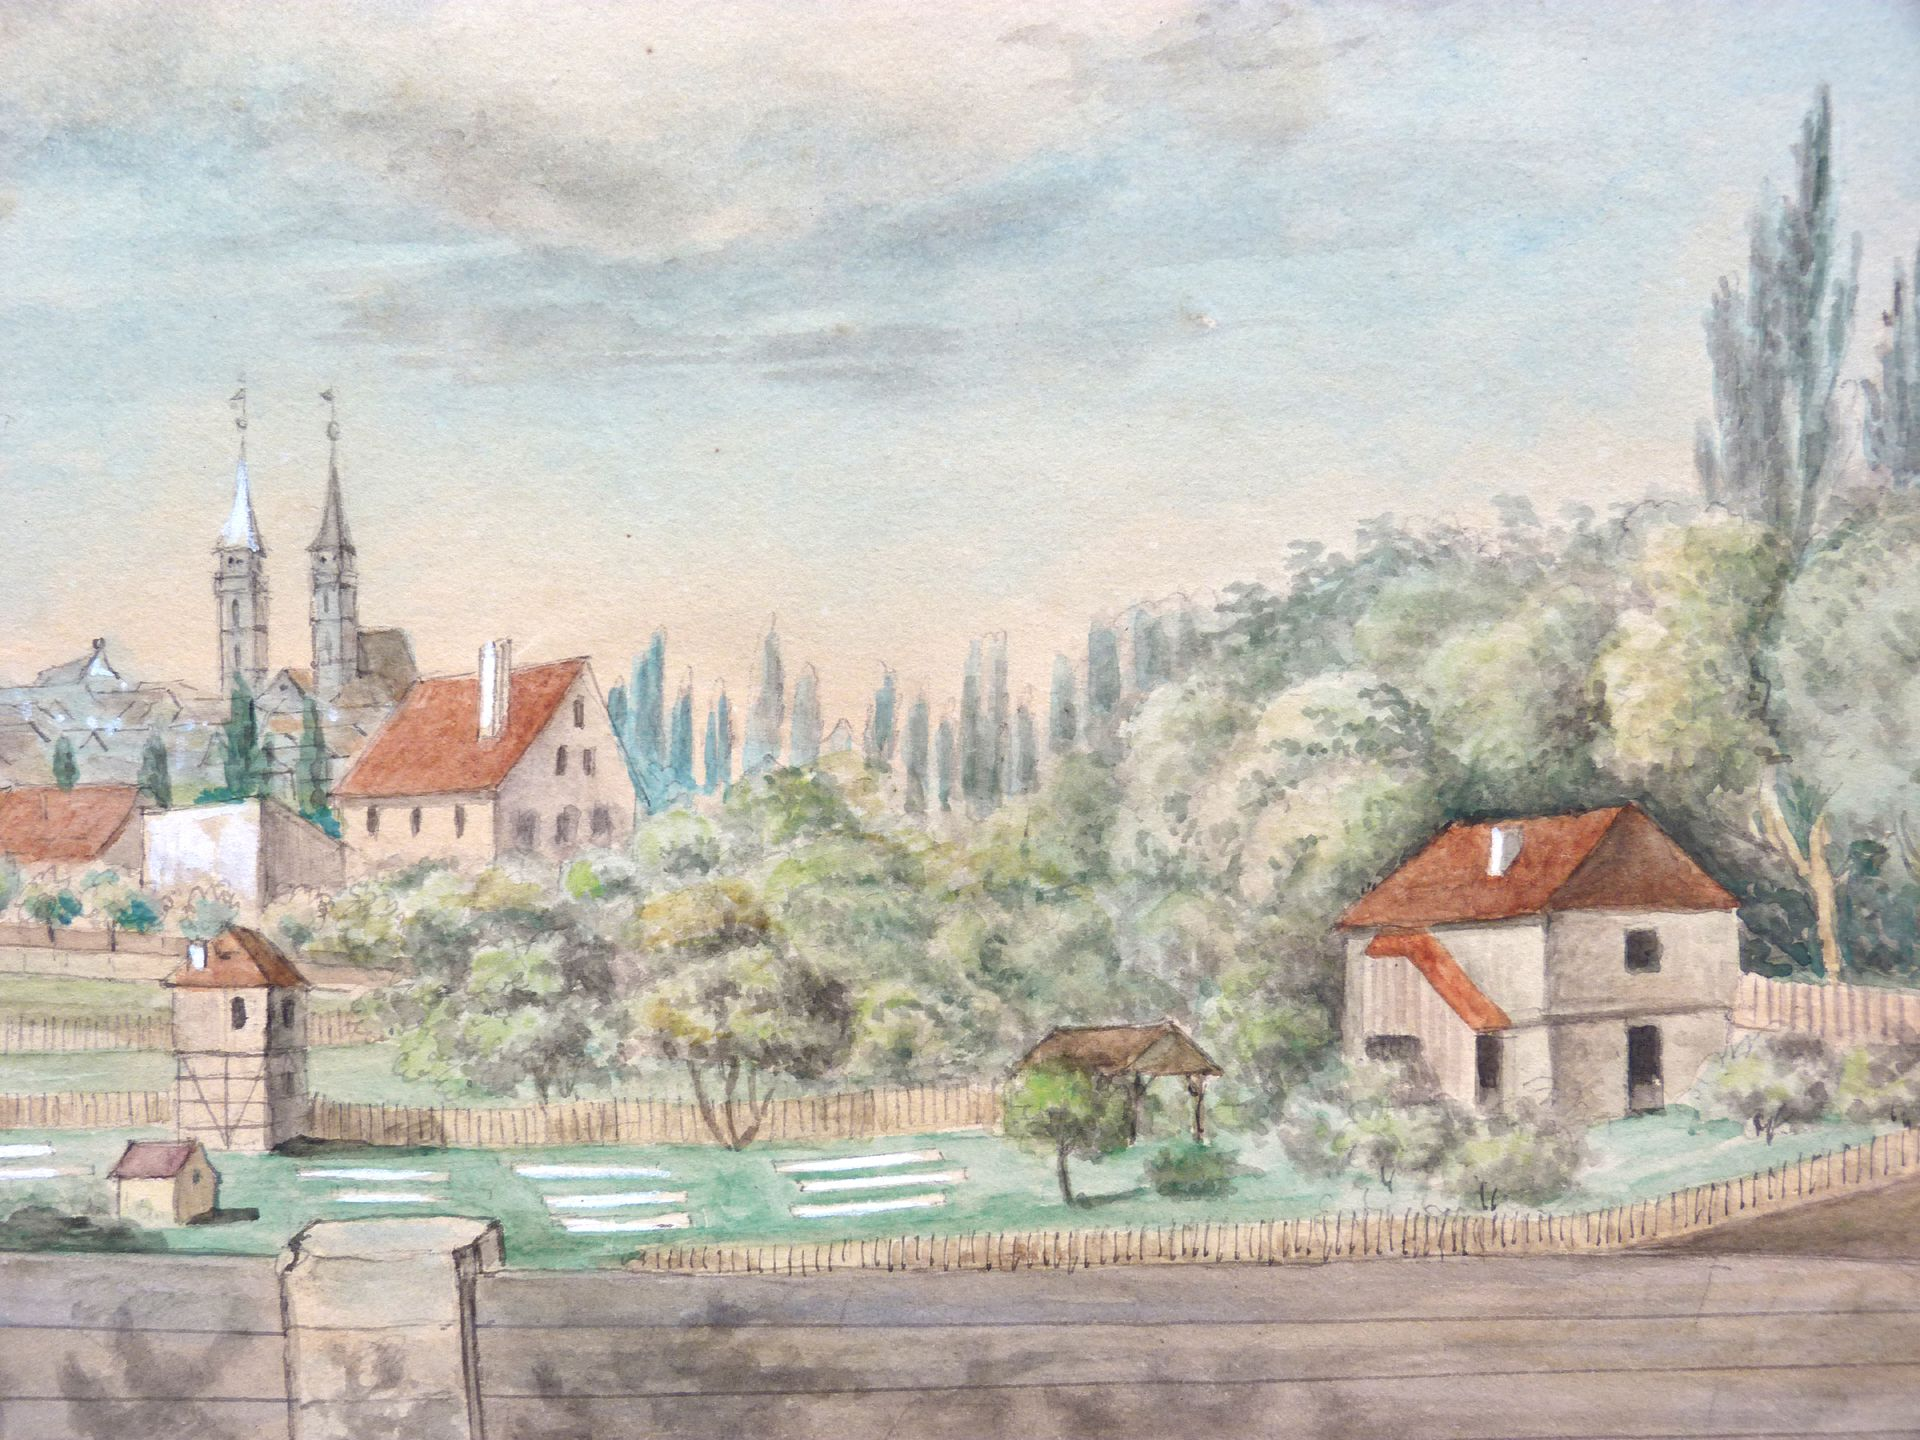 Rosenau with view to the castle and the old city of St. Sebald Gardens